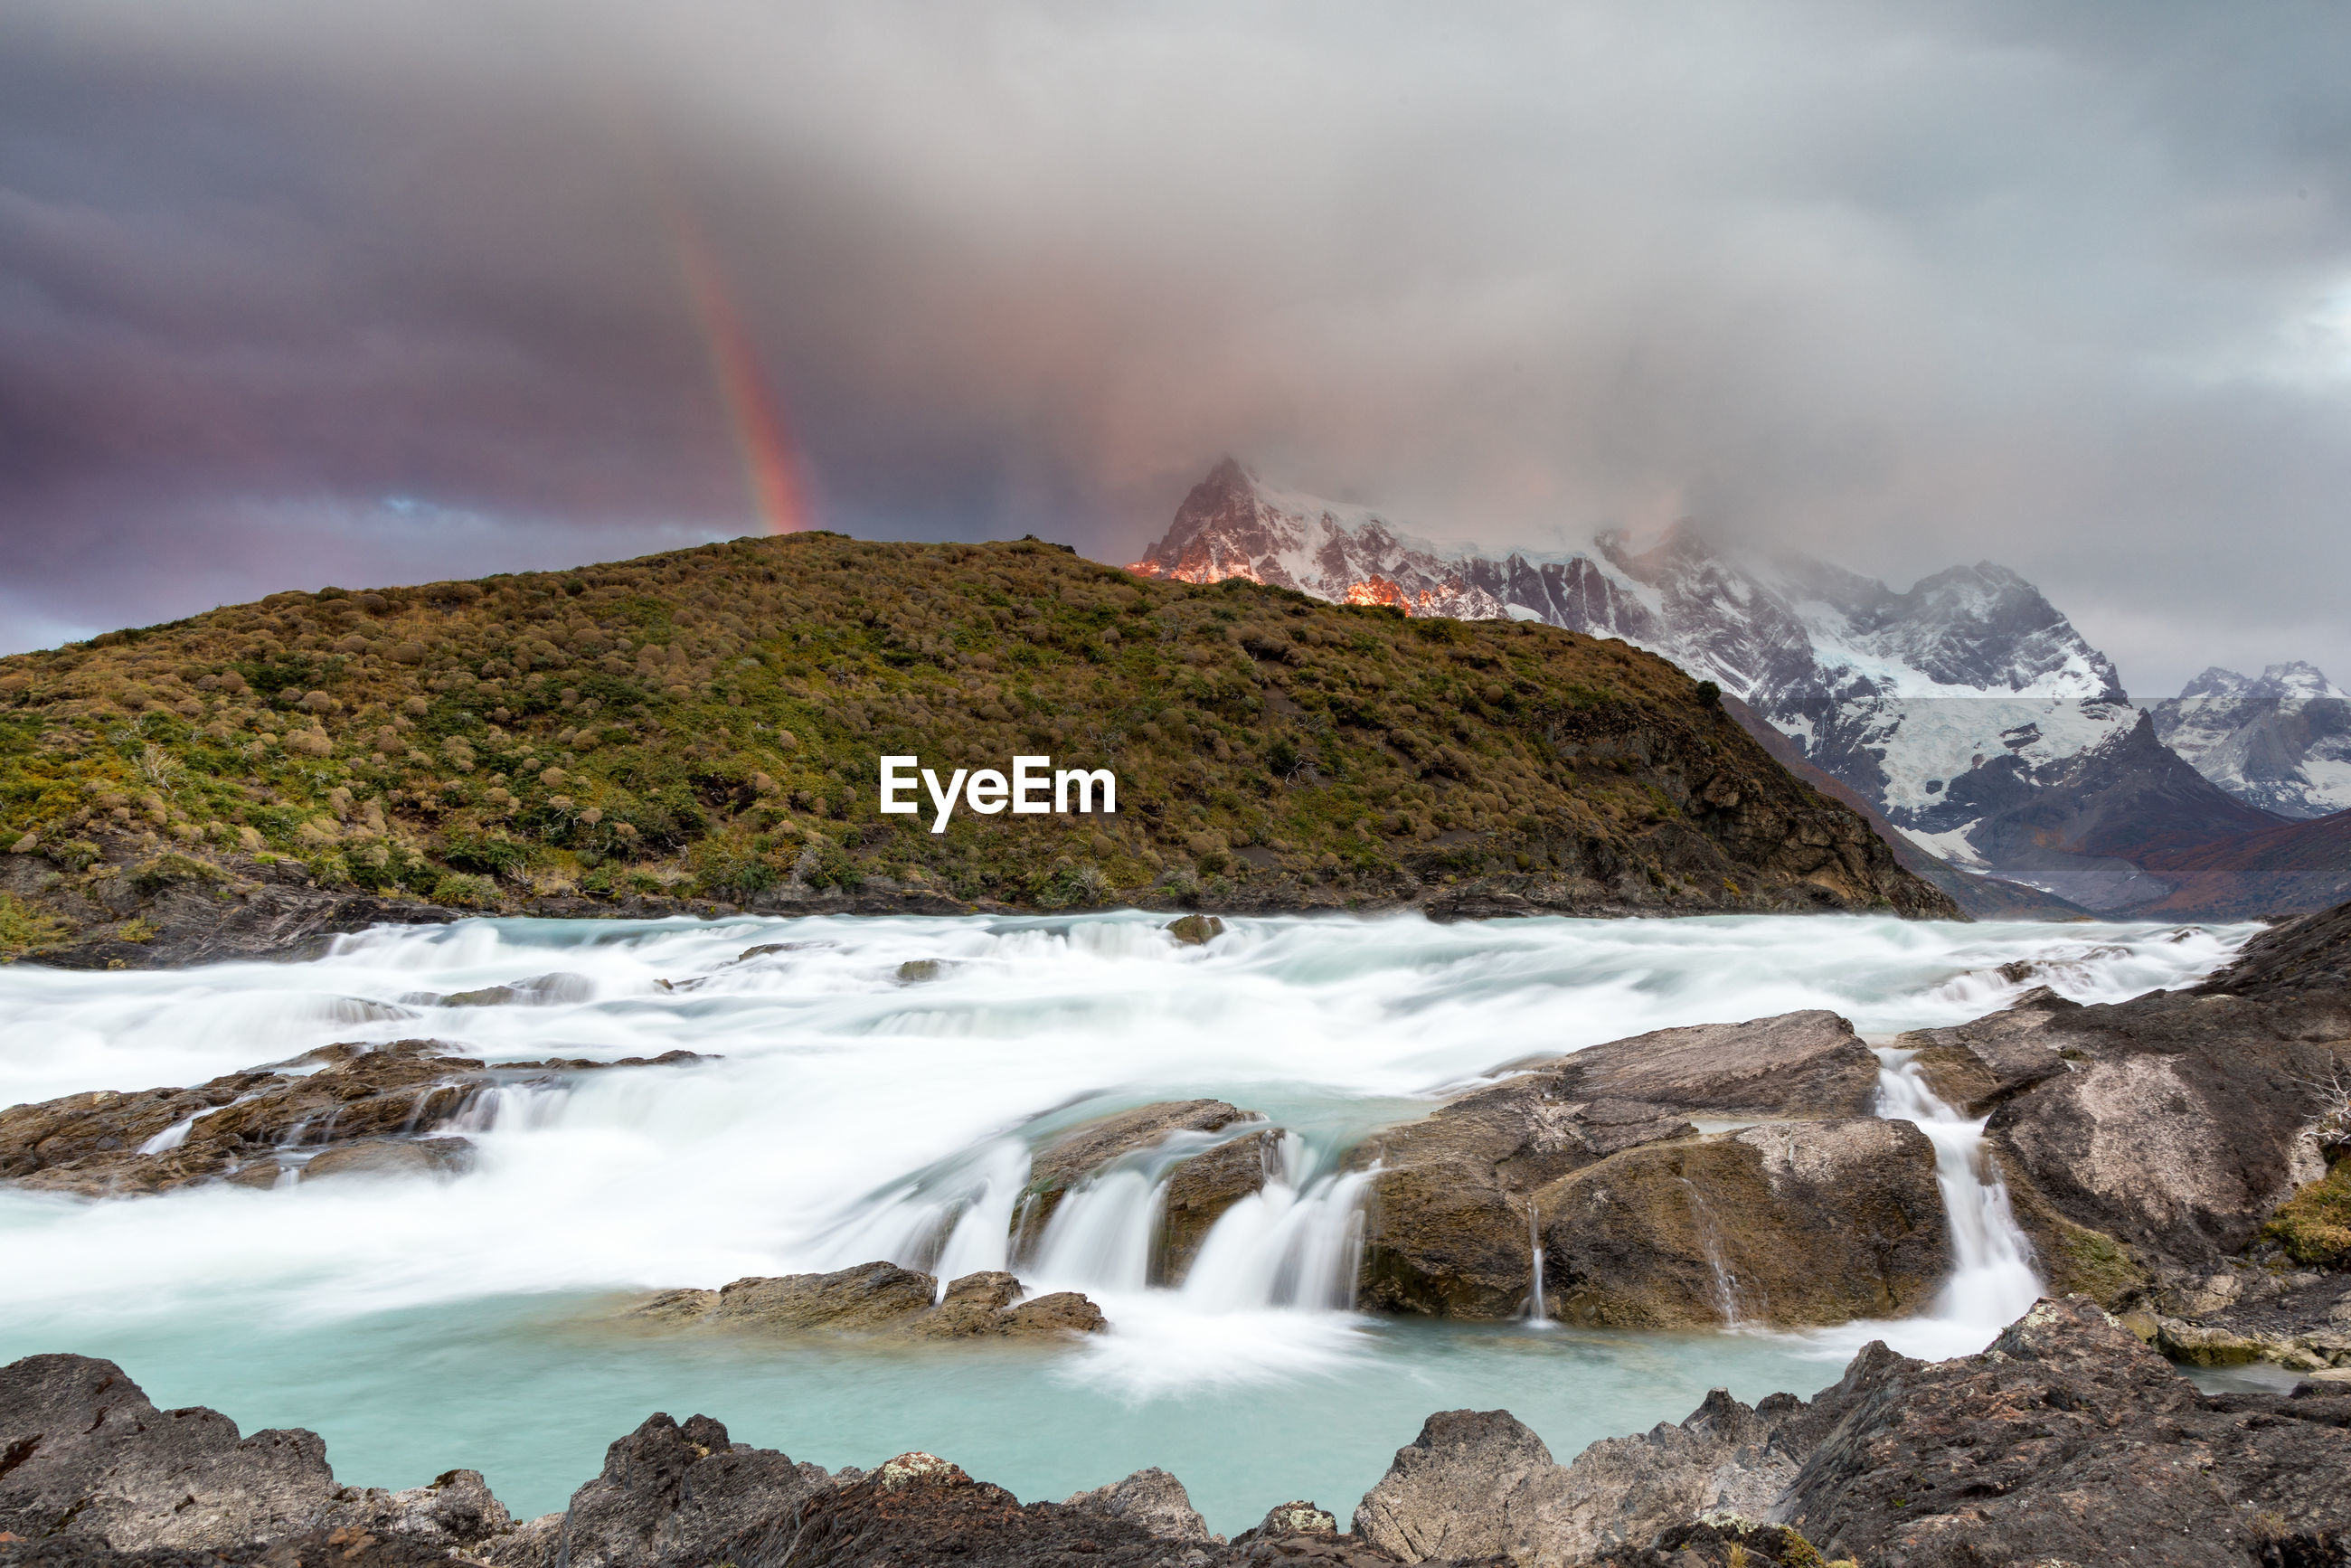 Scenic view of river with rainbow over mountain against sky